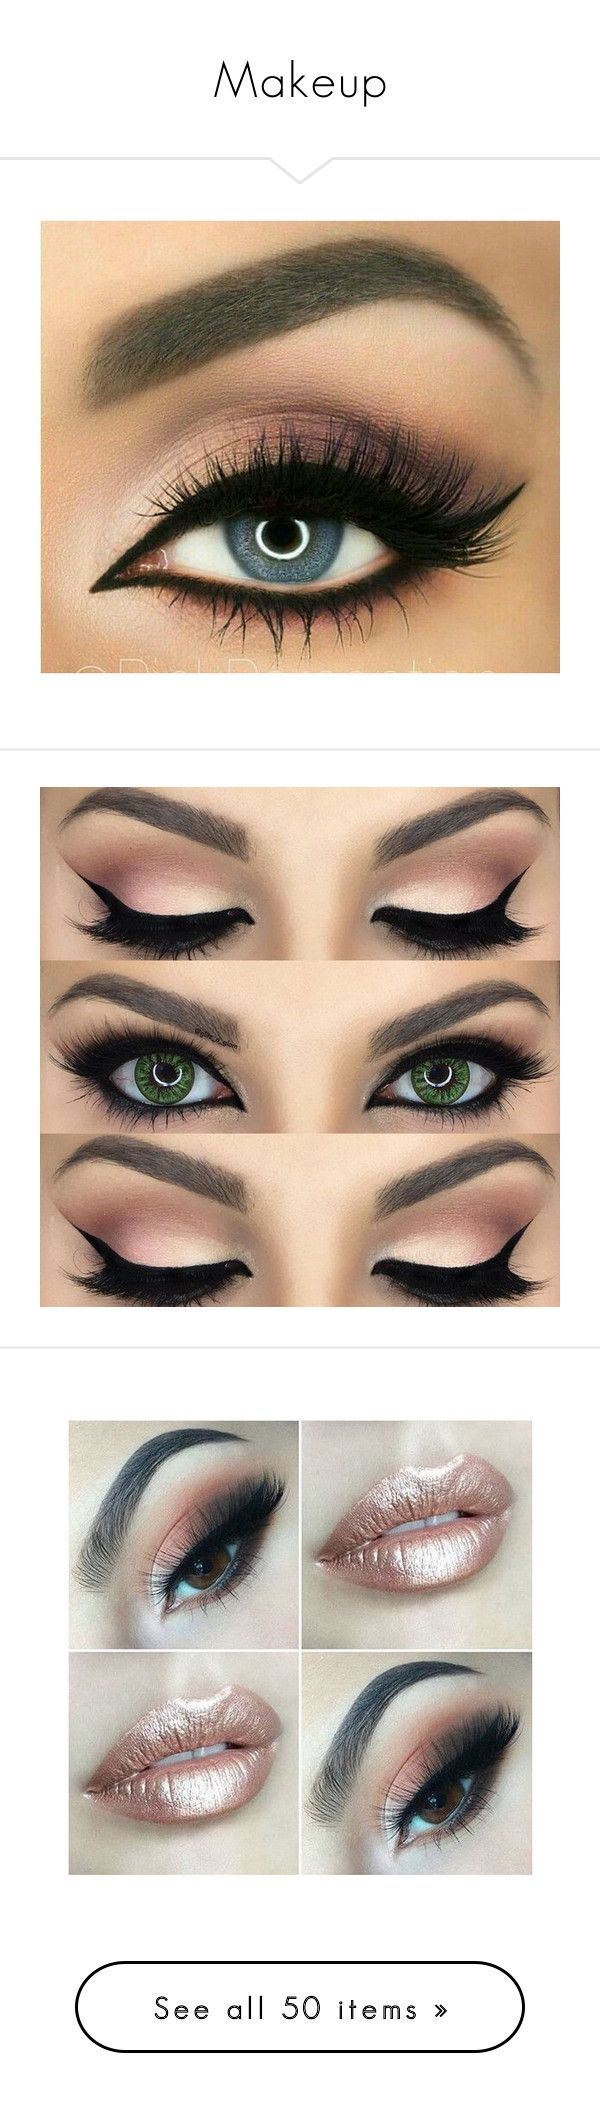 """Makeup"" by wattpad-lover-z ❤ liked on Polyvore featuring beauty products, makeup, eye makeup, eyes, beauty, accessories, lip makeup, lipstick, eyeshadow and eye's"